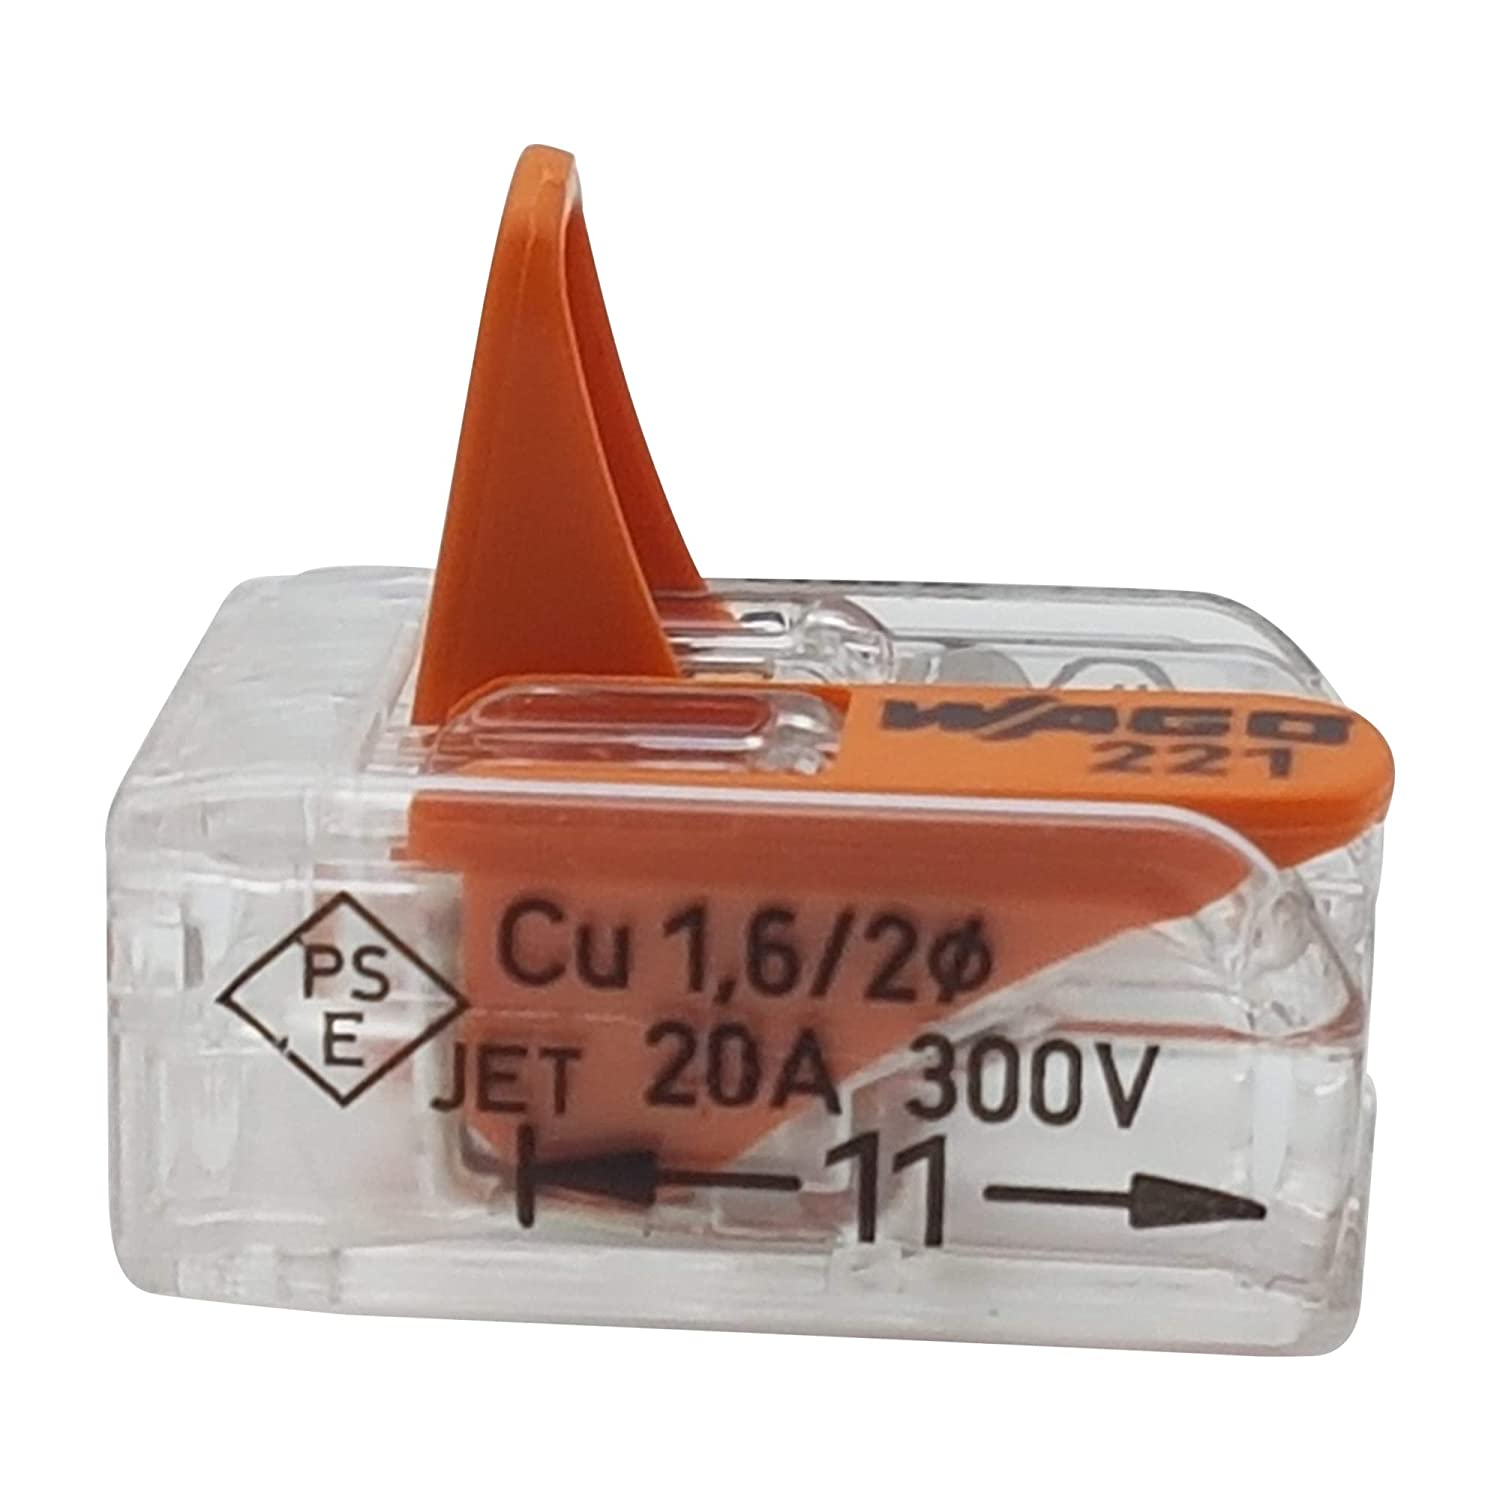 0.2-4 mm/² 200 pieces Wago 221-412 connection clamp 2 conductors with actuation lever transparent small design